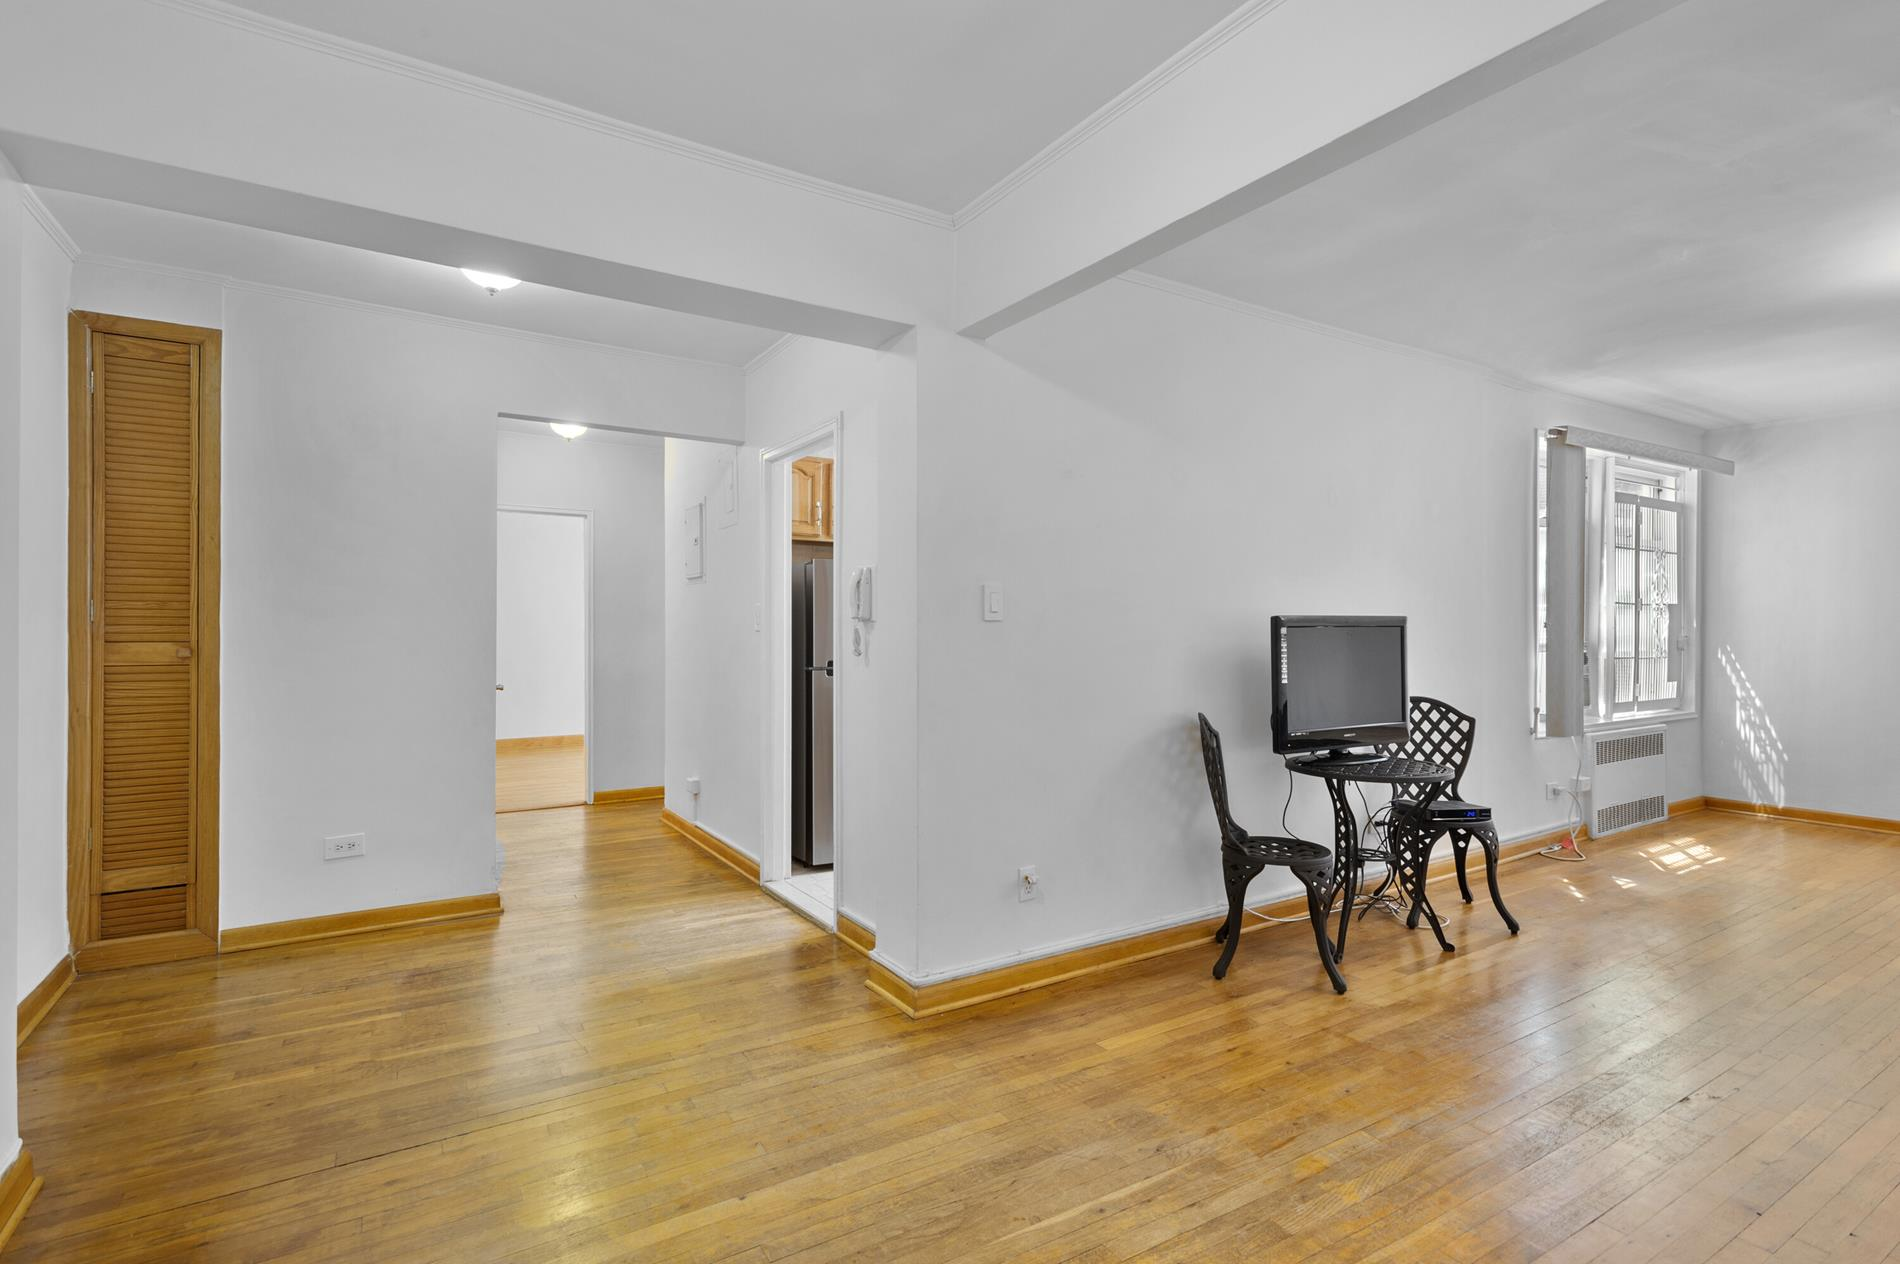 79-10 34th Avenue 5-M Jackson Heights Queens NY 11372